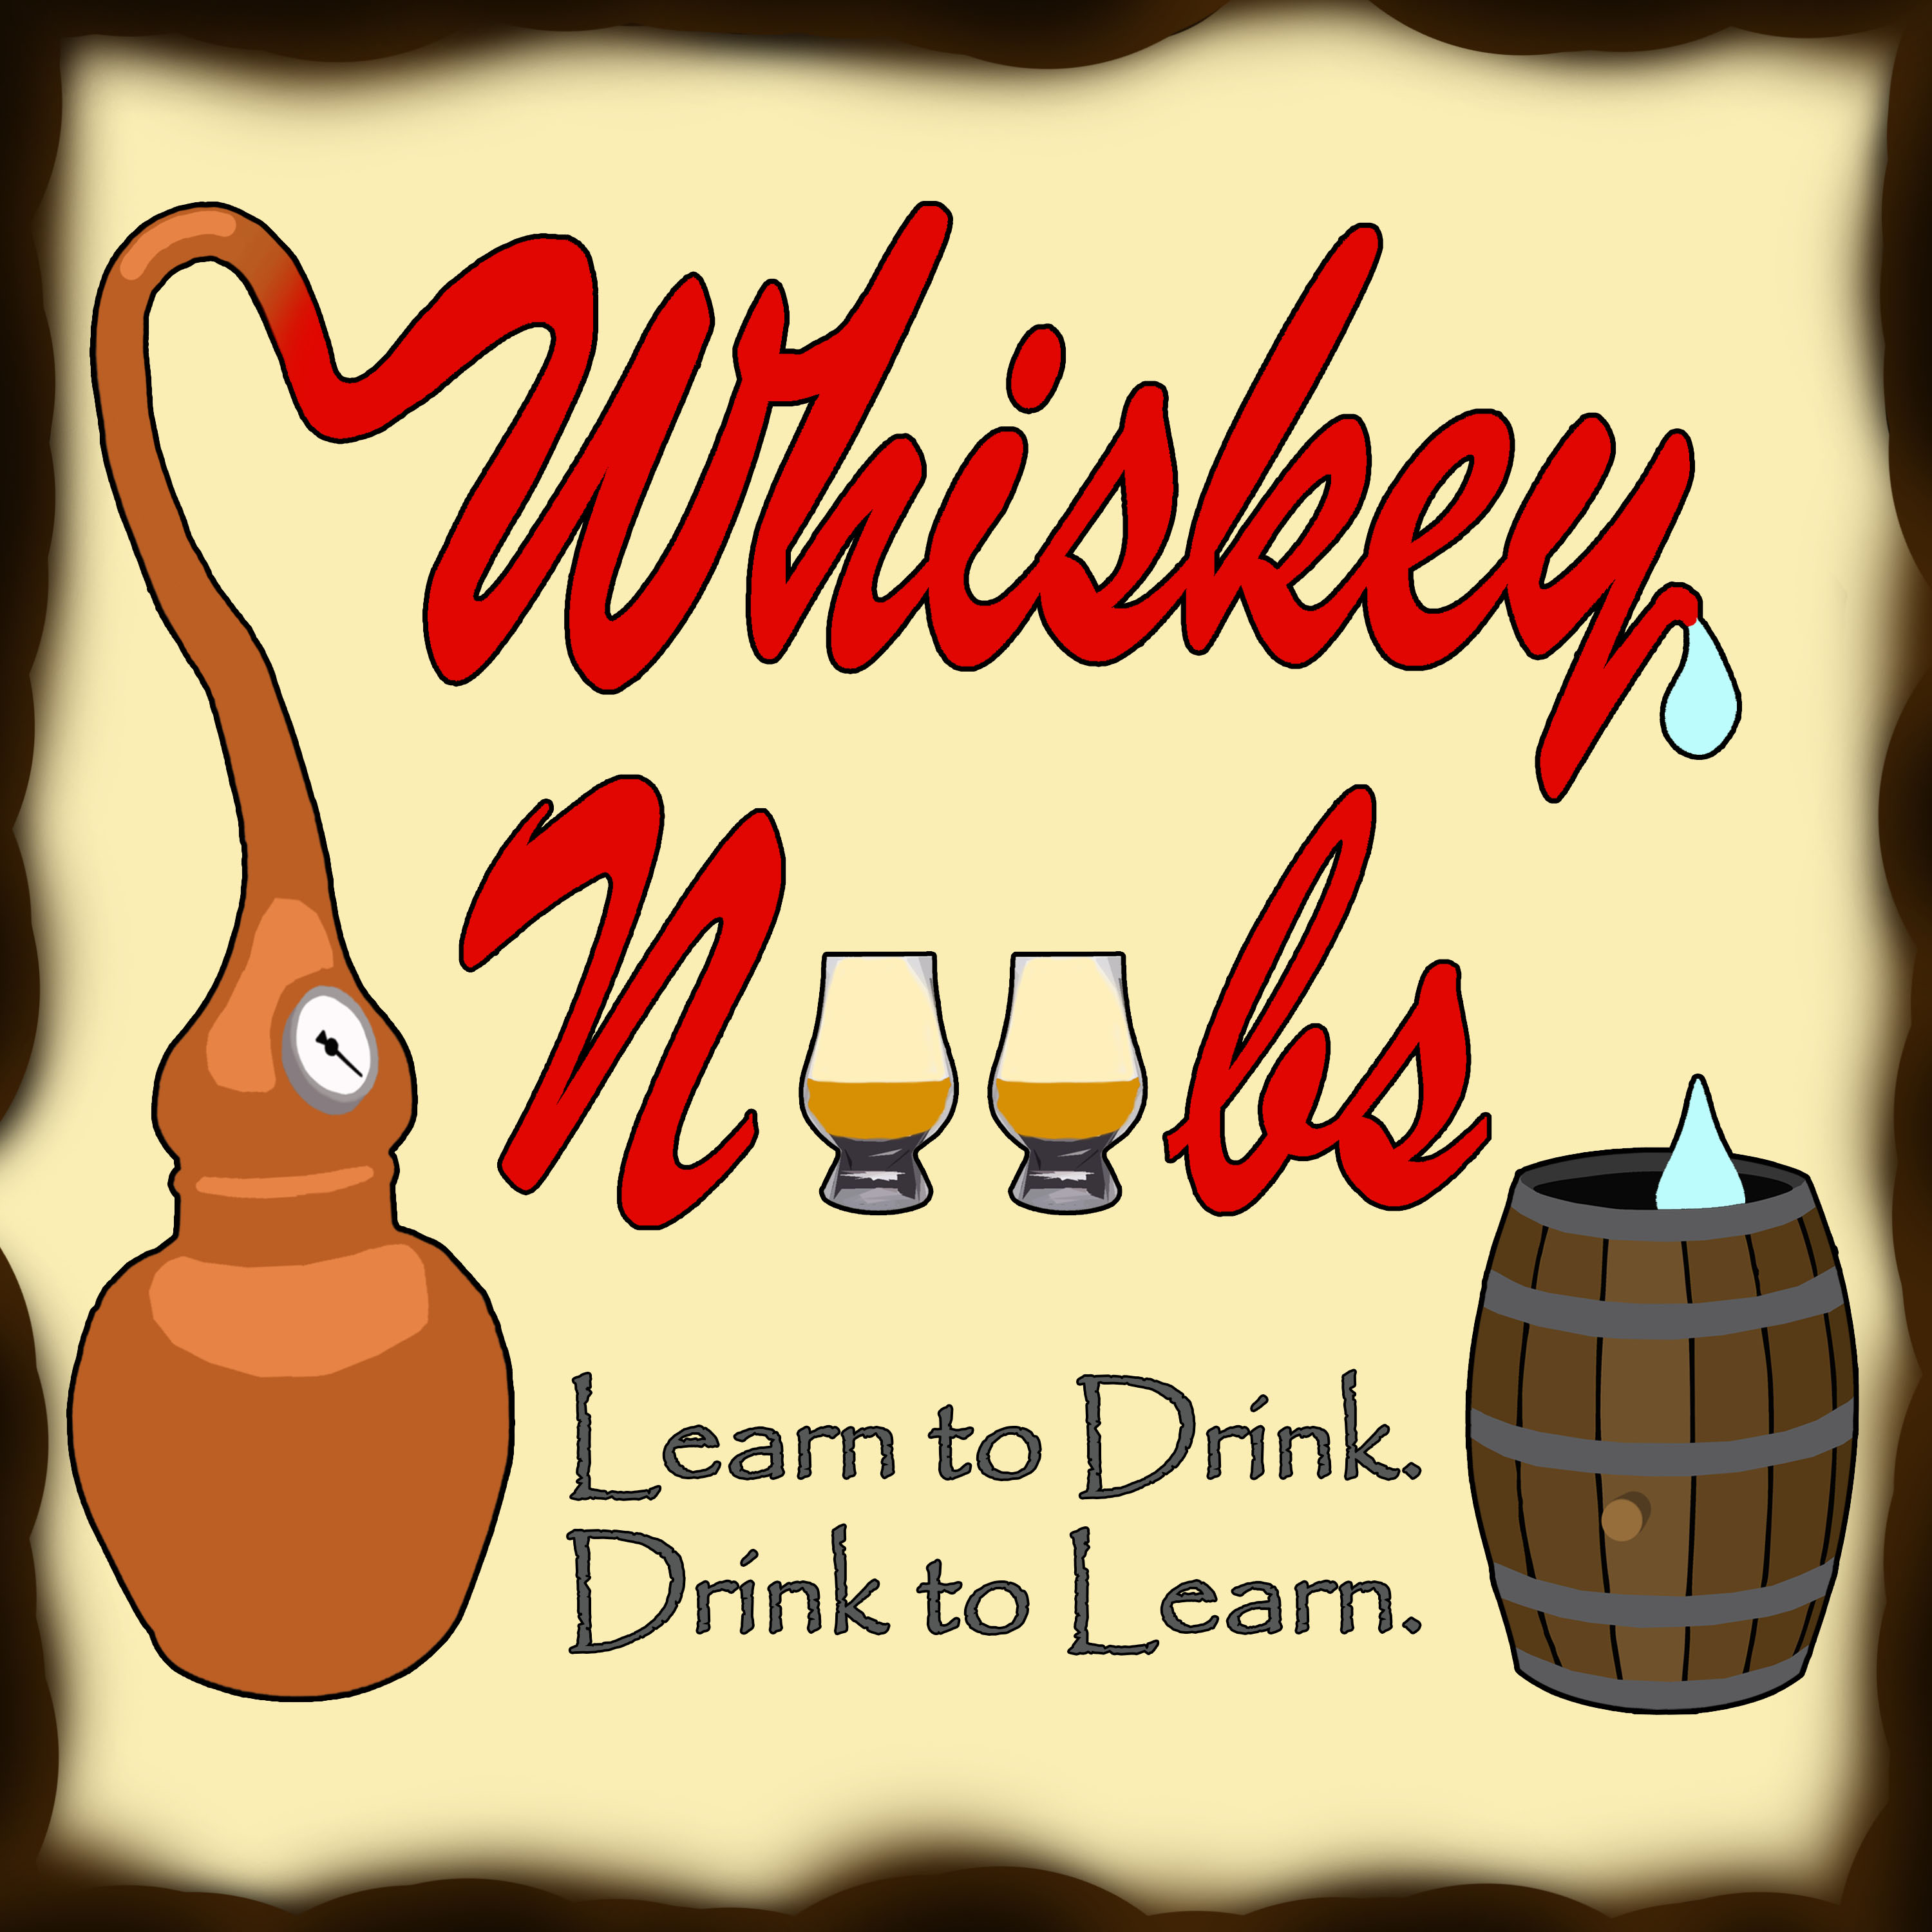 #22: Finding Your Whiskey Palate